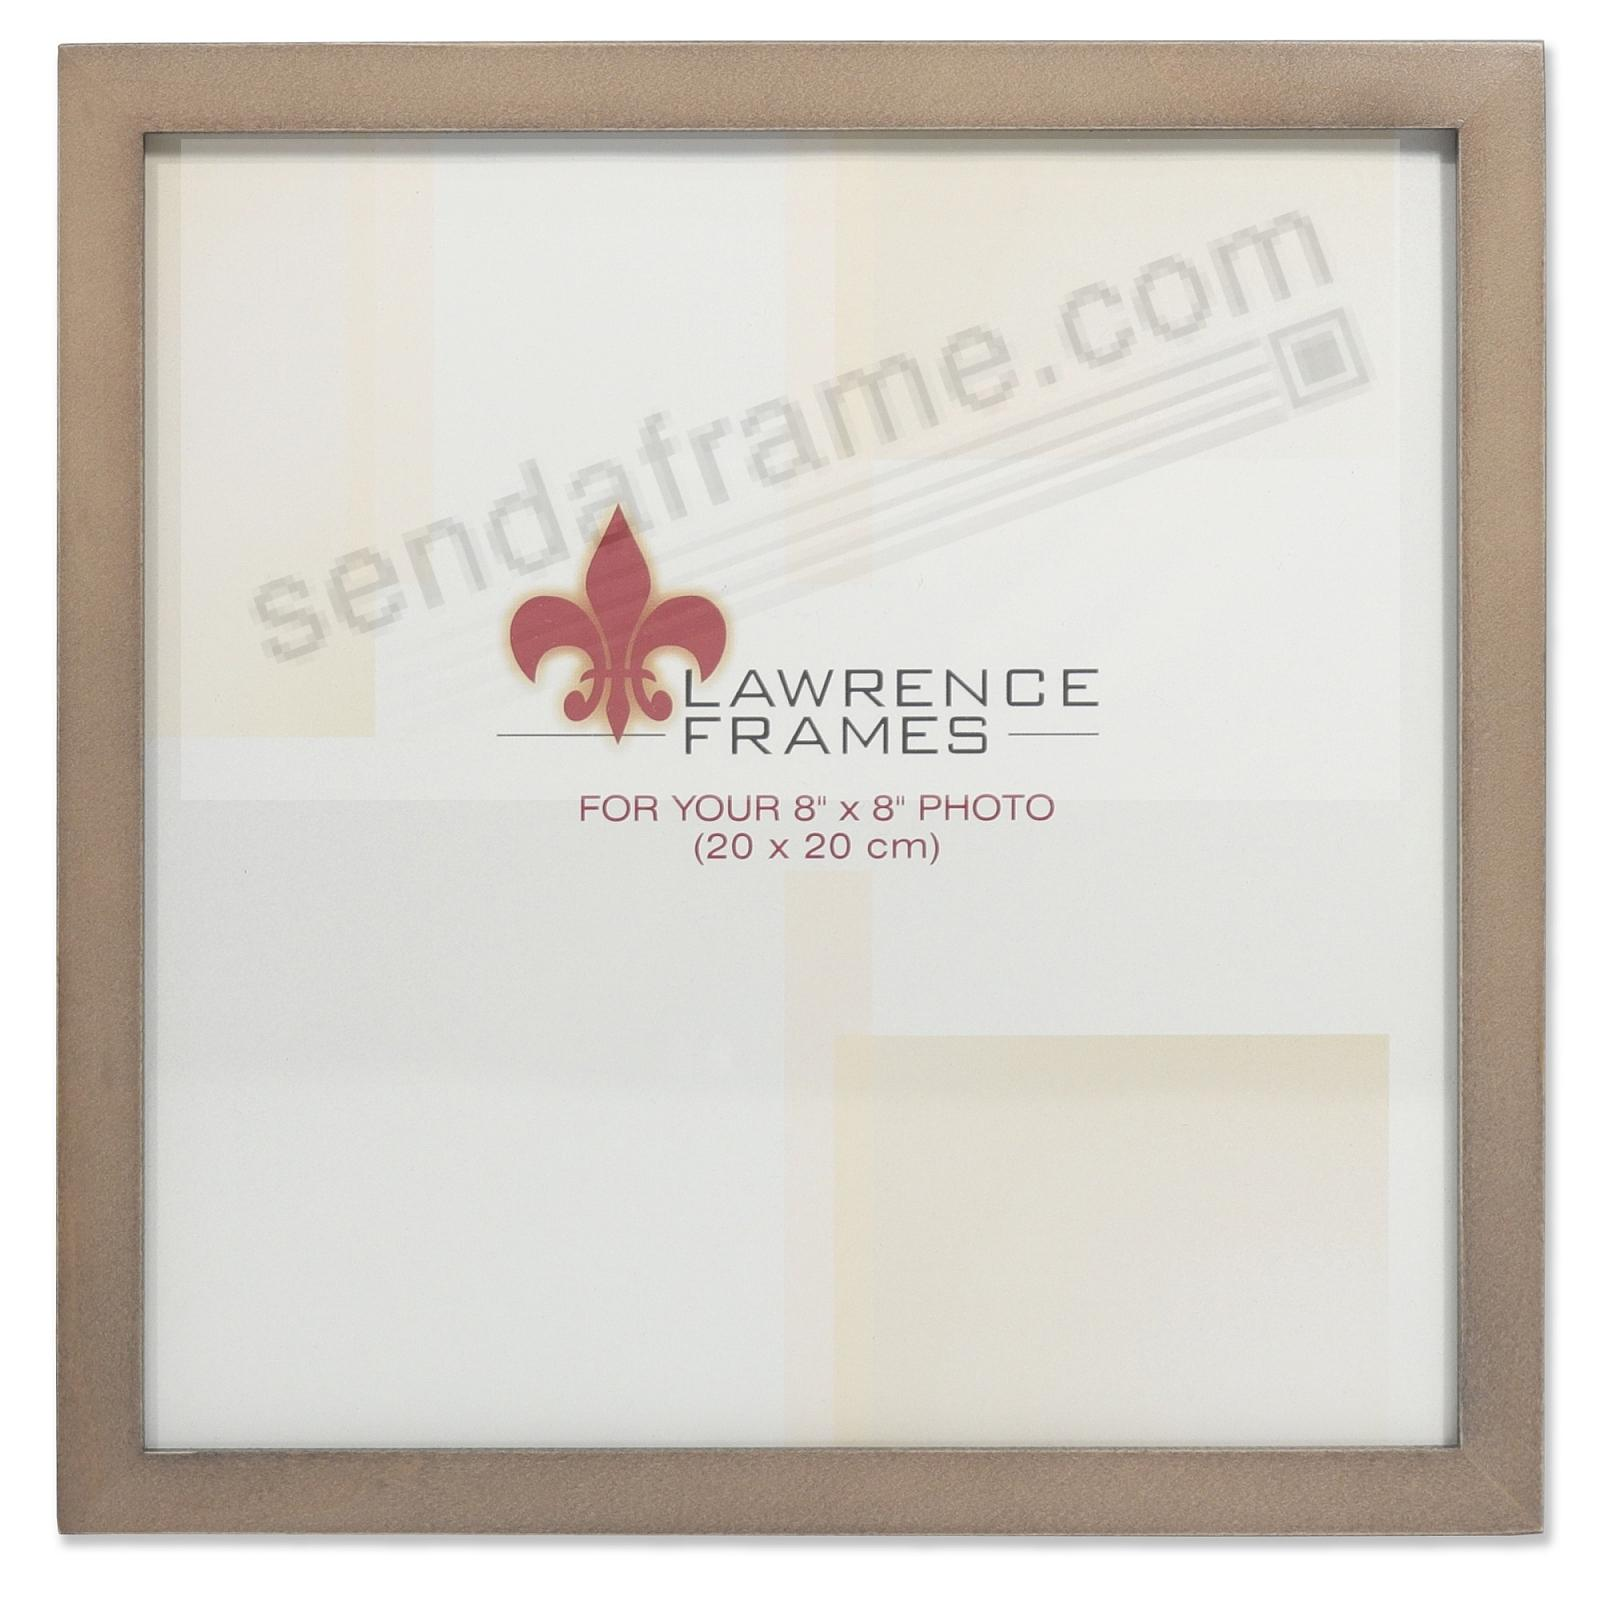 SQUARE CORNER Gray Stain 8x8 frame by Lawrence Frames®